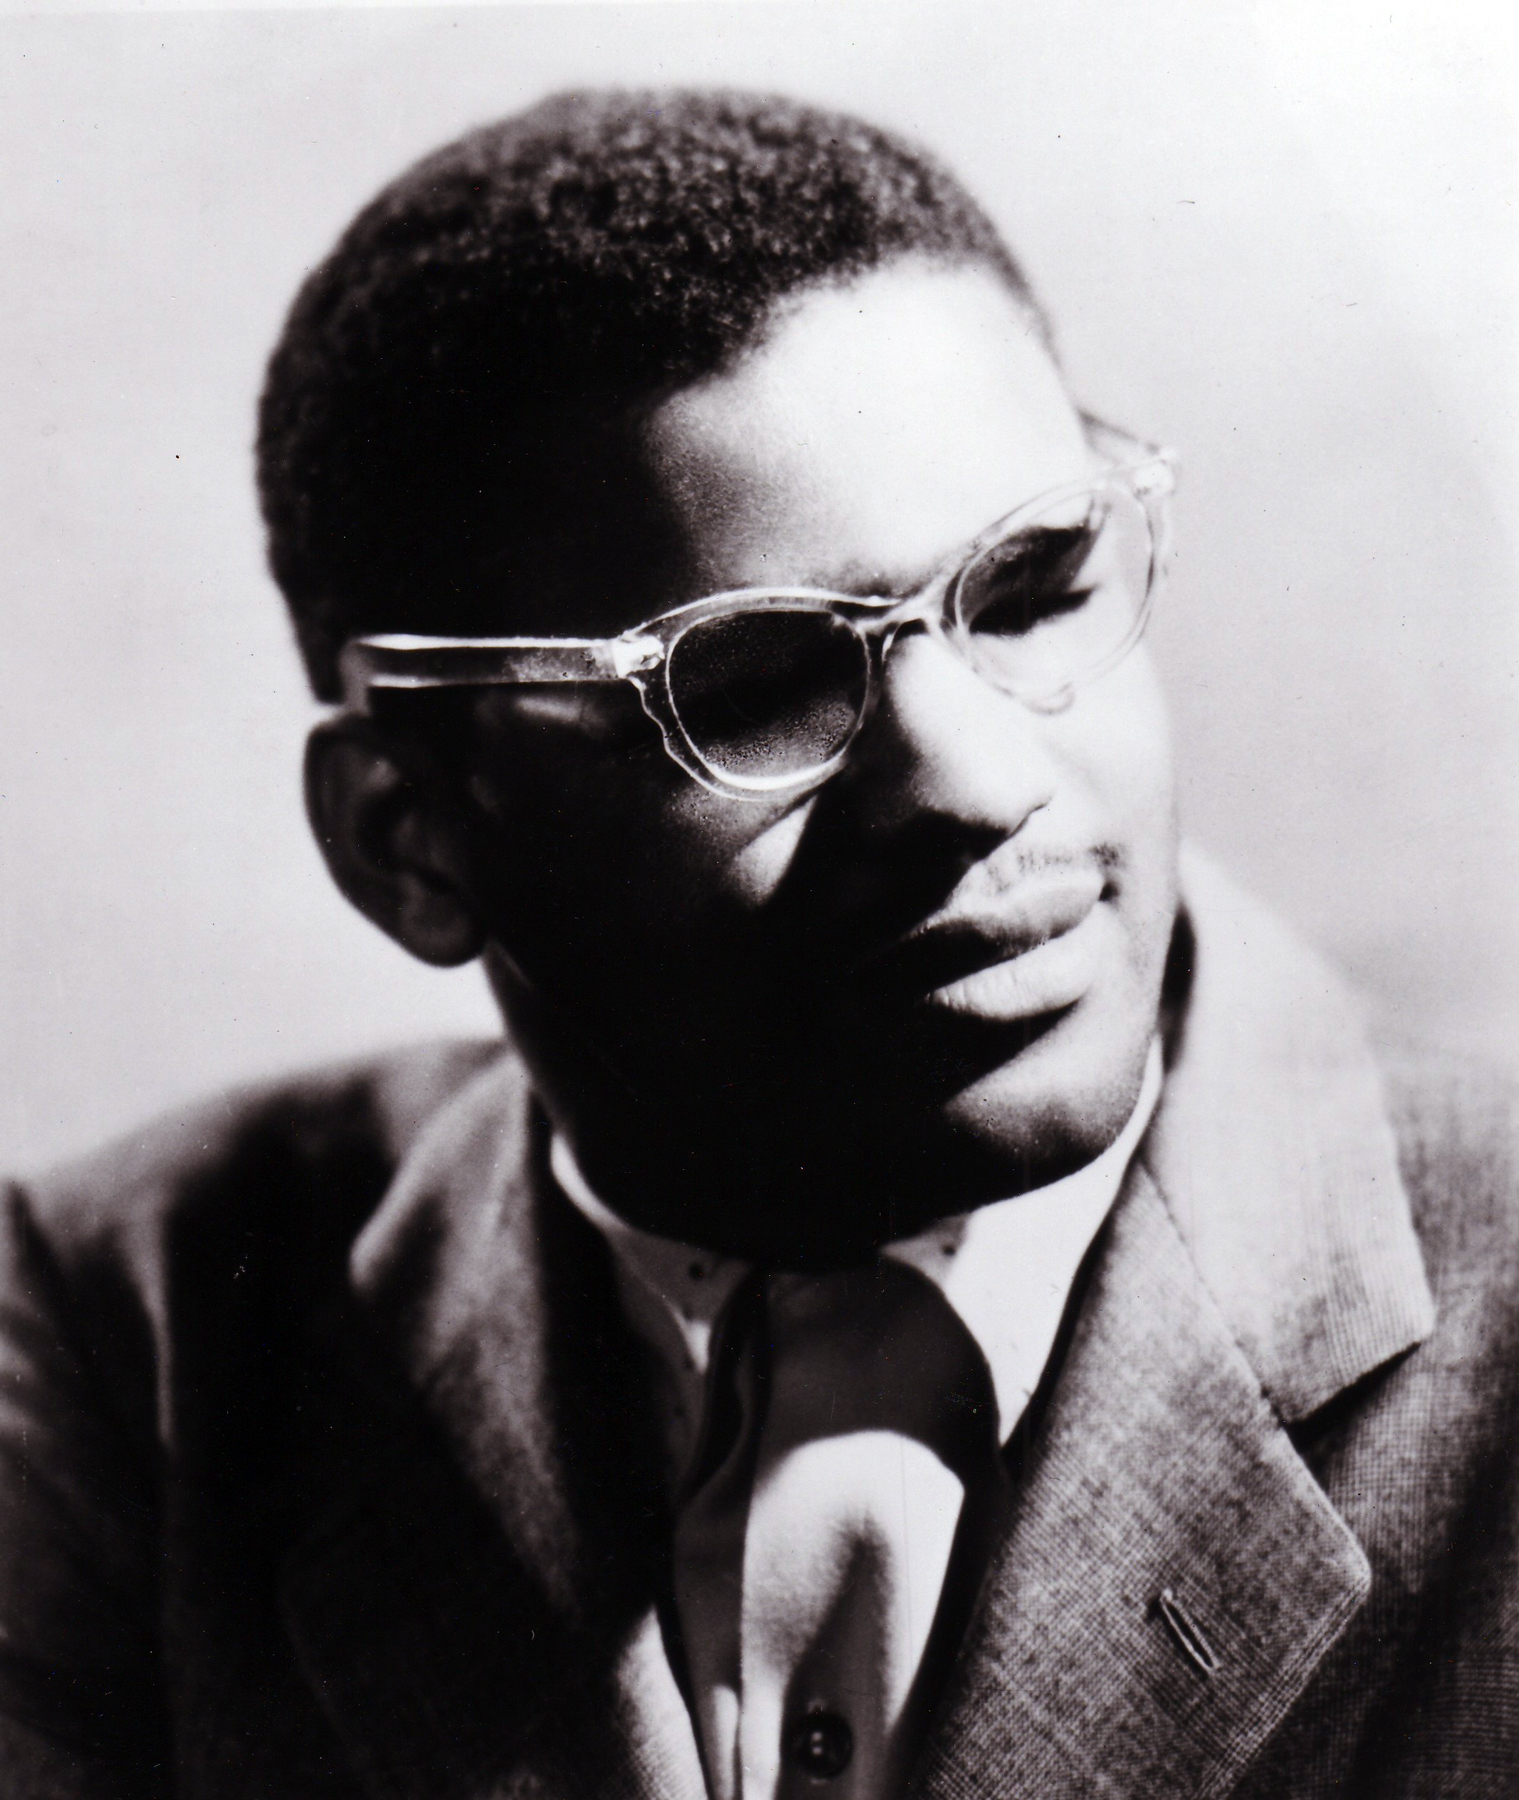 UNSPECIFIED - JANUARY 01: Photo of Ray CHARLES; Portrait of Ray Charles (Photo by Gilles Petard/Redferns)